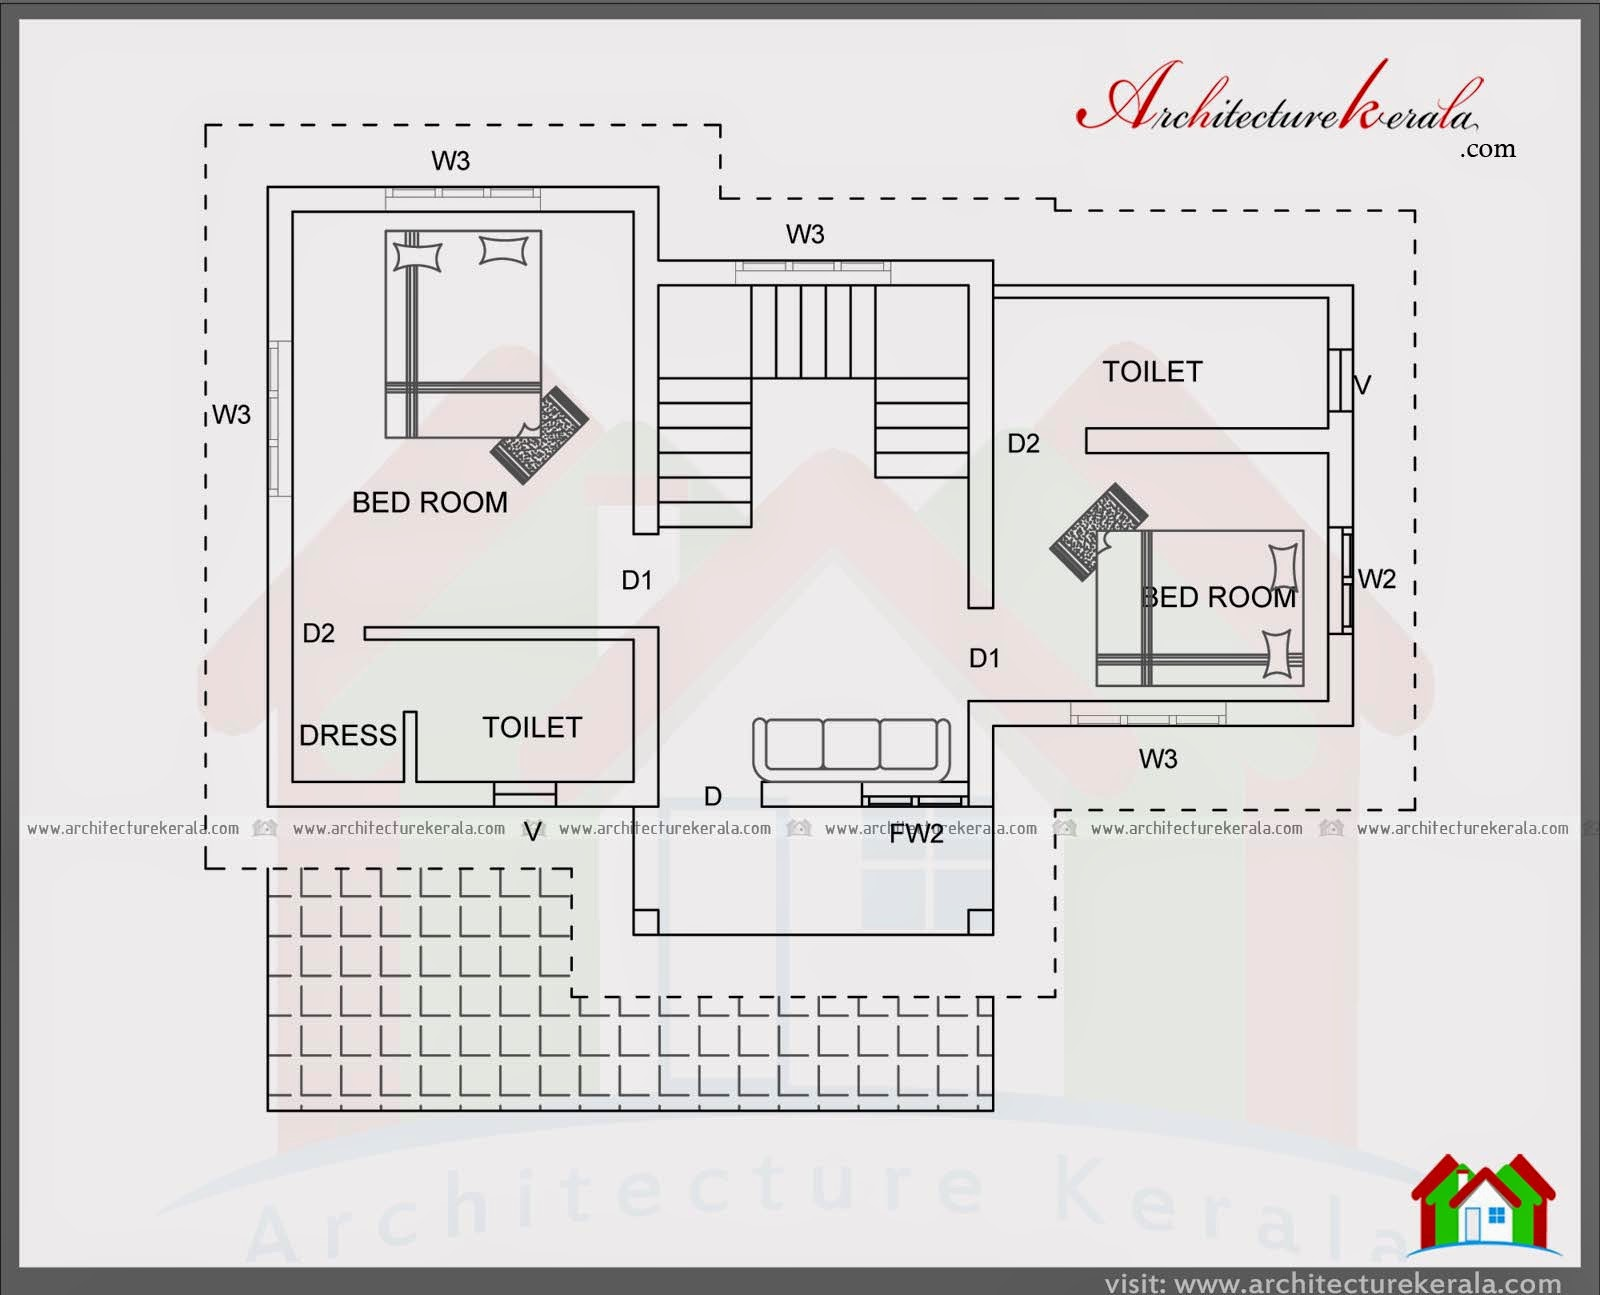 4 bedroom house plan in 1400 square feet architecture kerala for Four bedroom kerala house plans